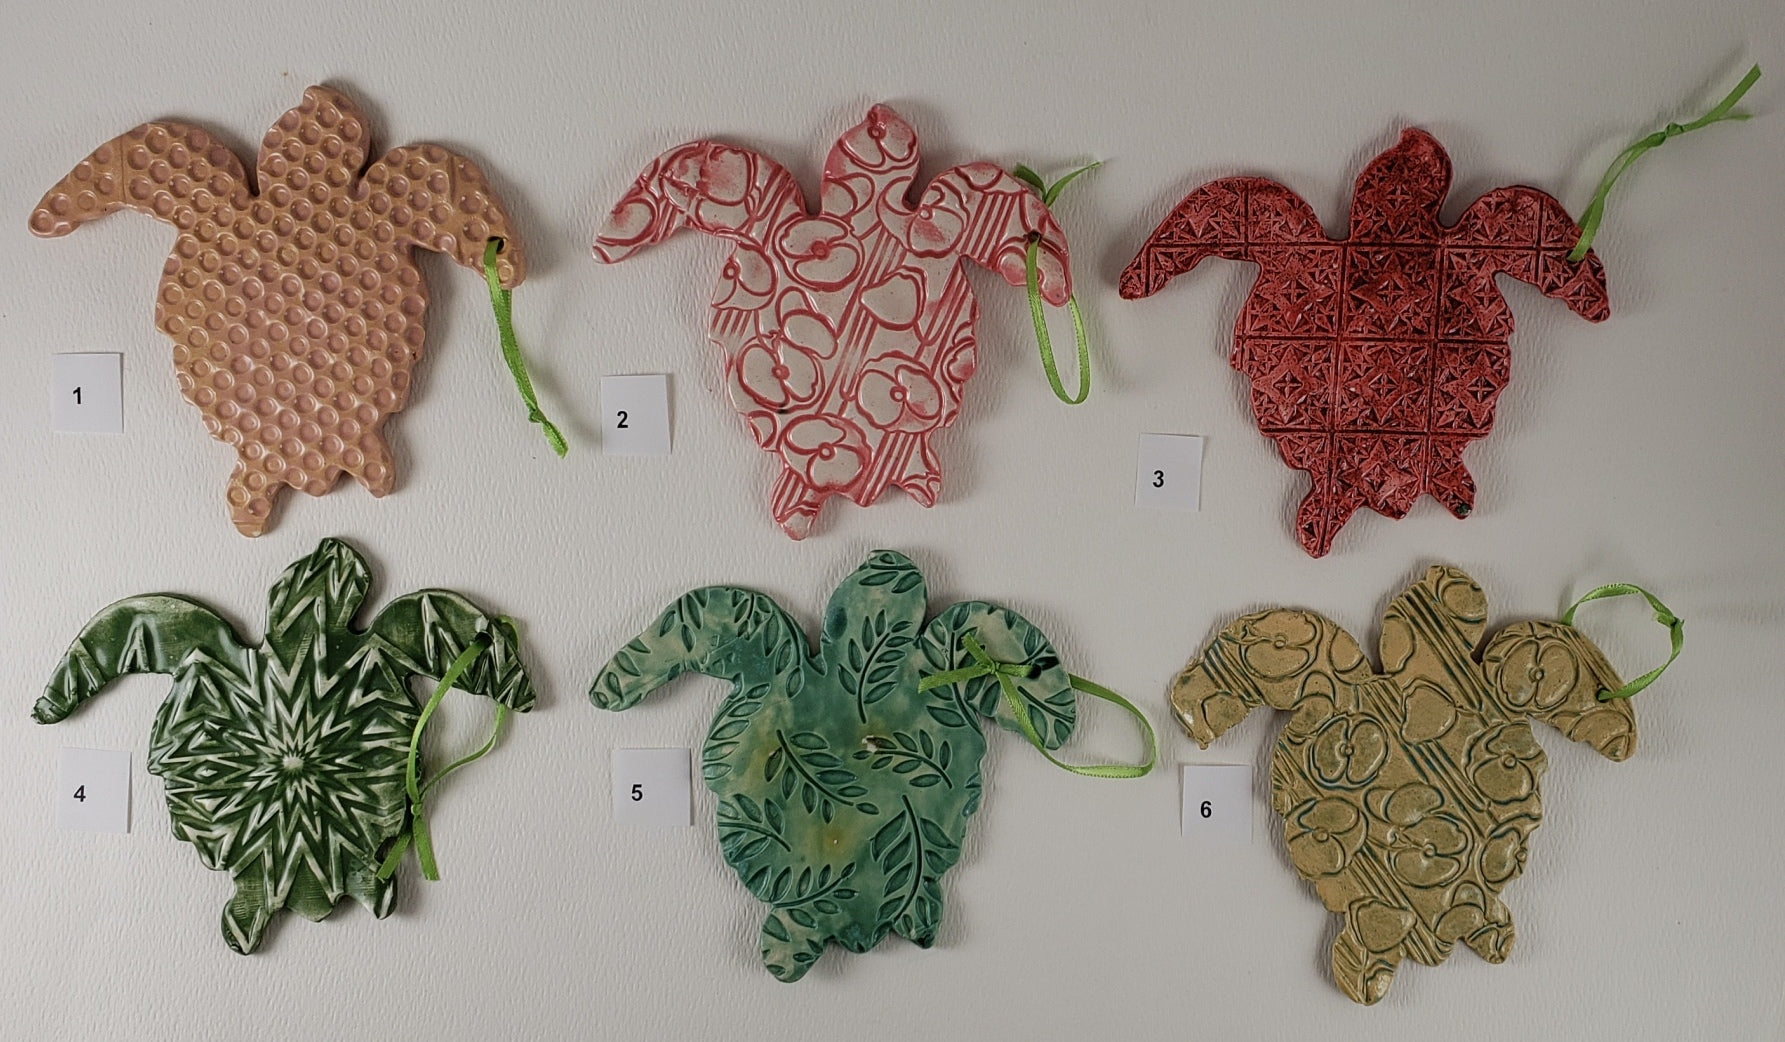 Turtle Ornaments - Artworks by Karen Fincannon